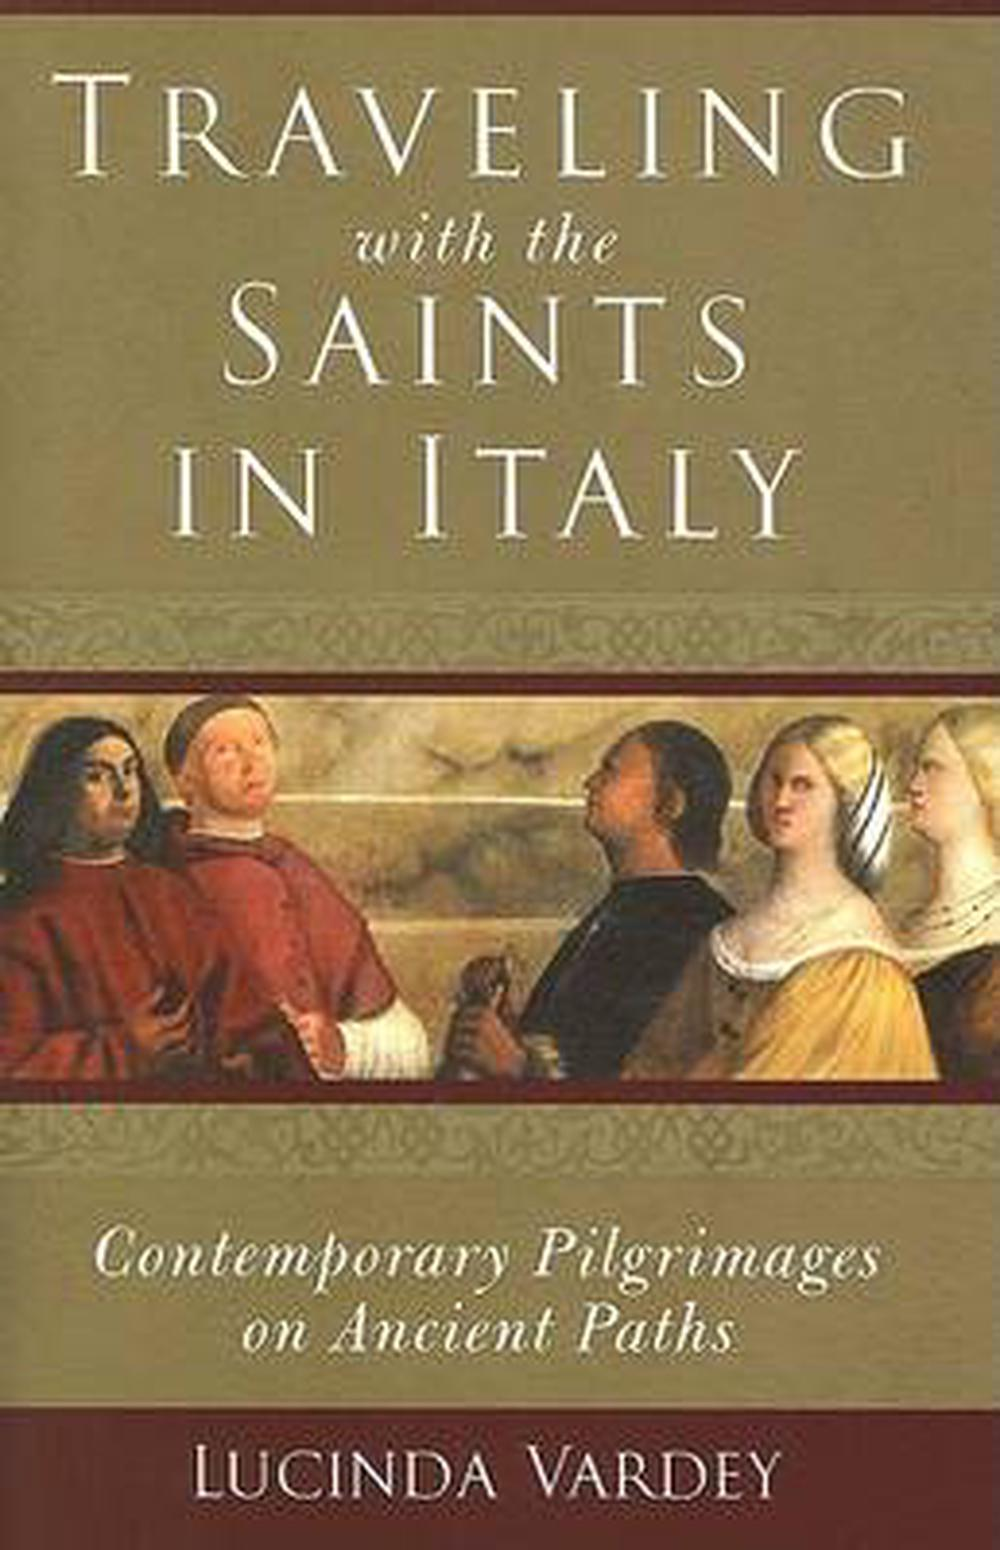 Traveling with the Saints in Italy: Contemporary Pilgrimages on Ancient Paths